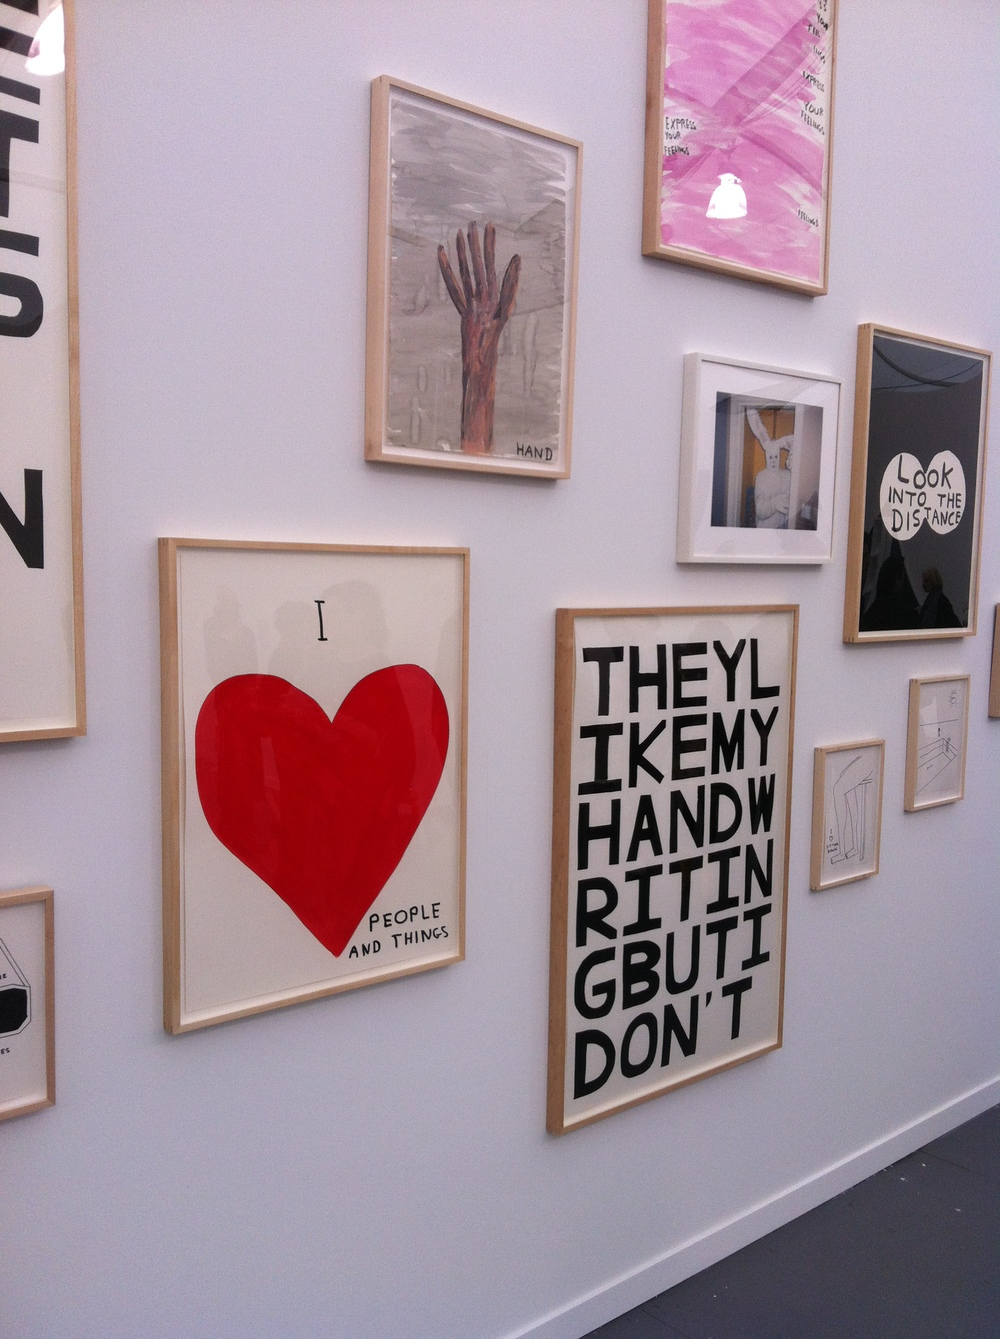 David Shrigley installation shown at the Anton Kern booth